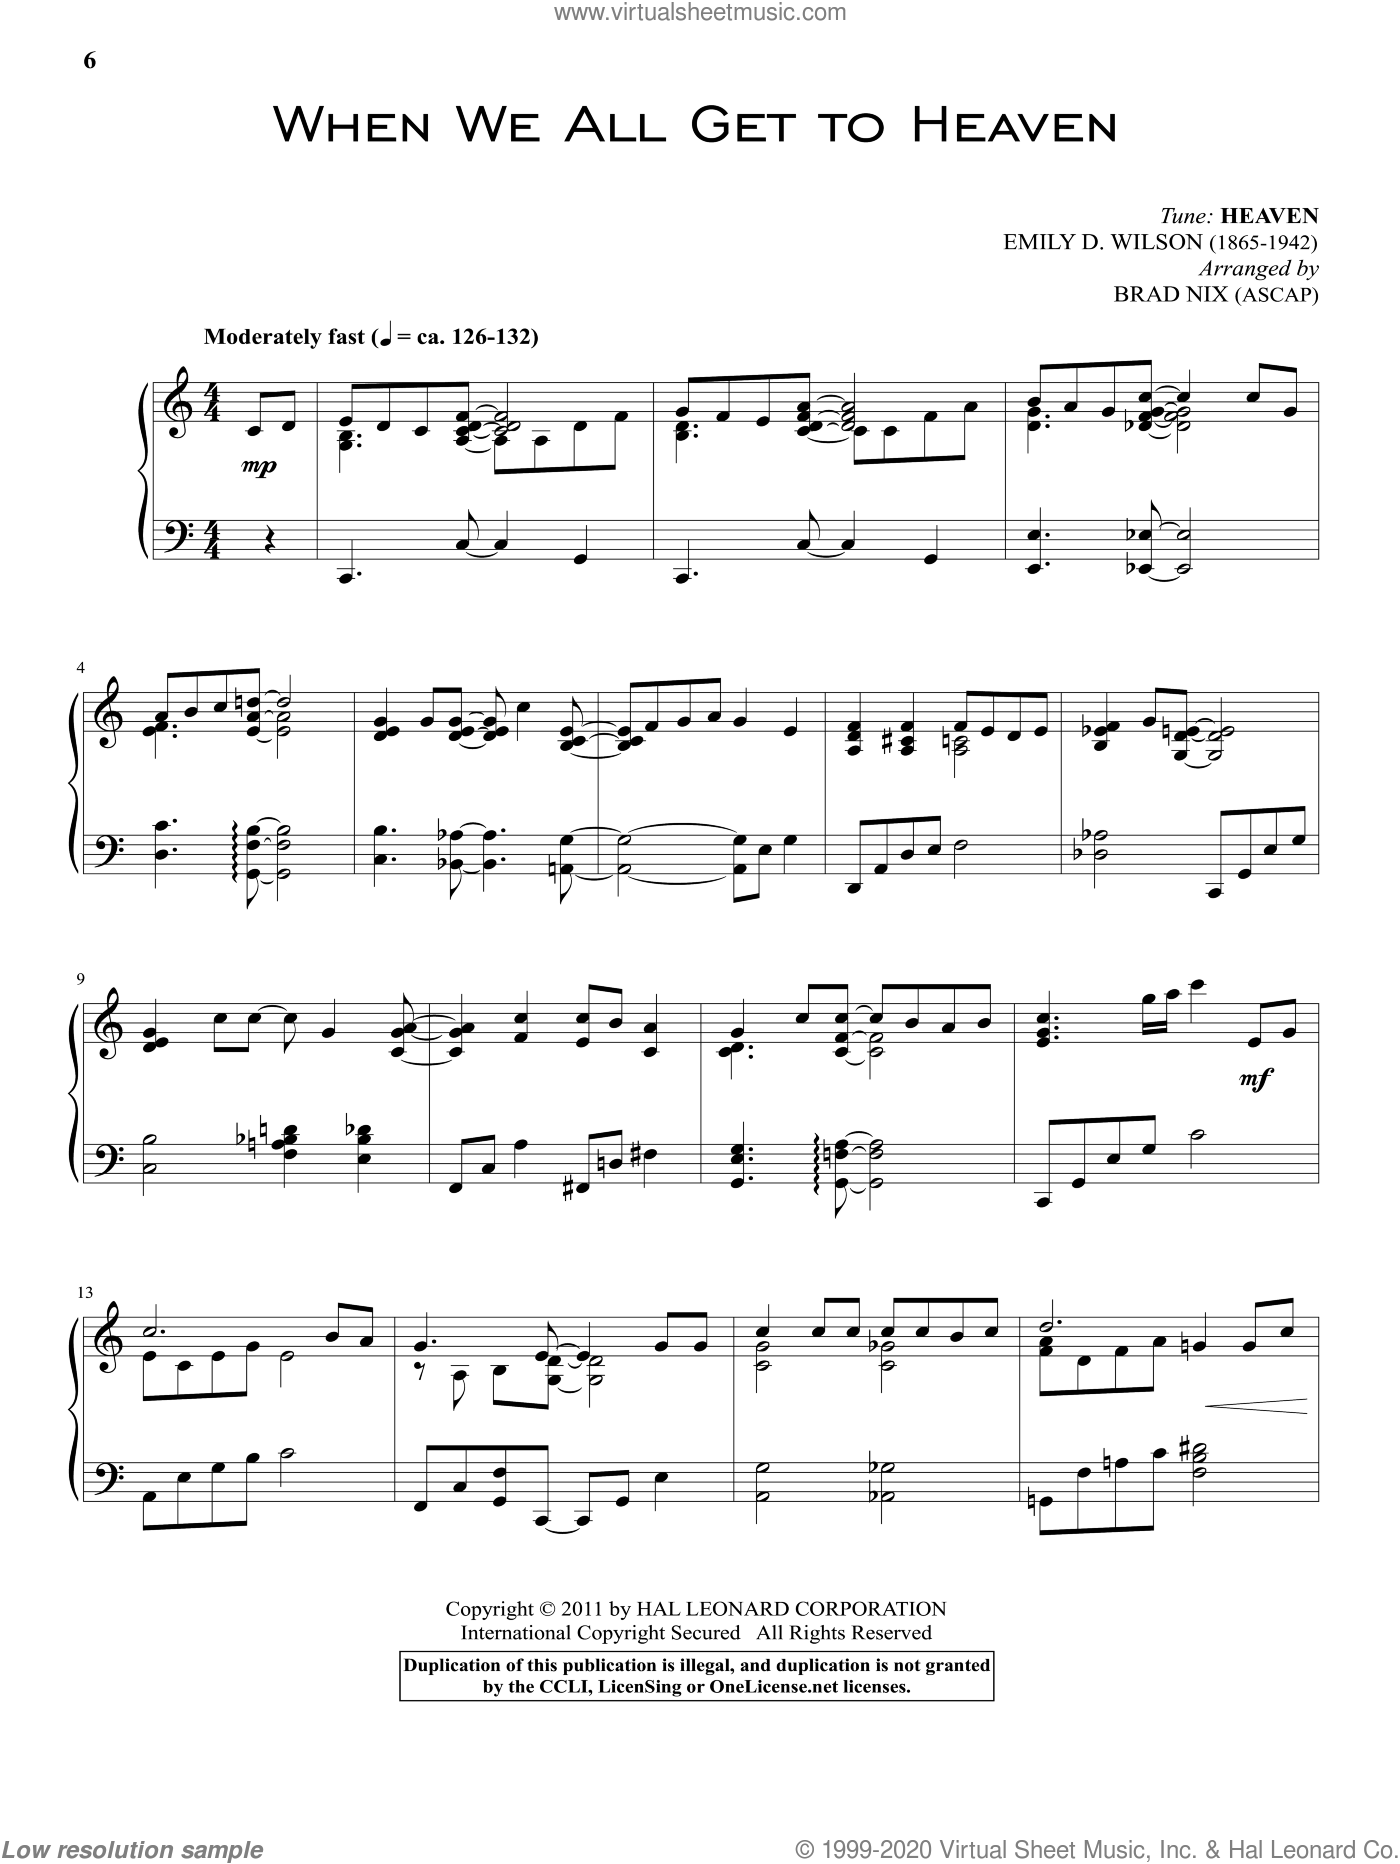 When We All Get To Heaven sheet music for piano solo by Emily D. Wilson and Eliza E. Hewitt. Score Image Preview.